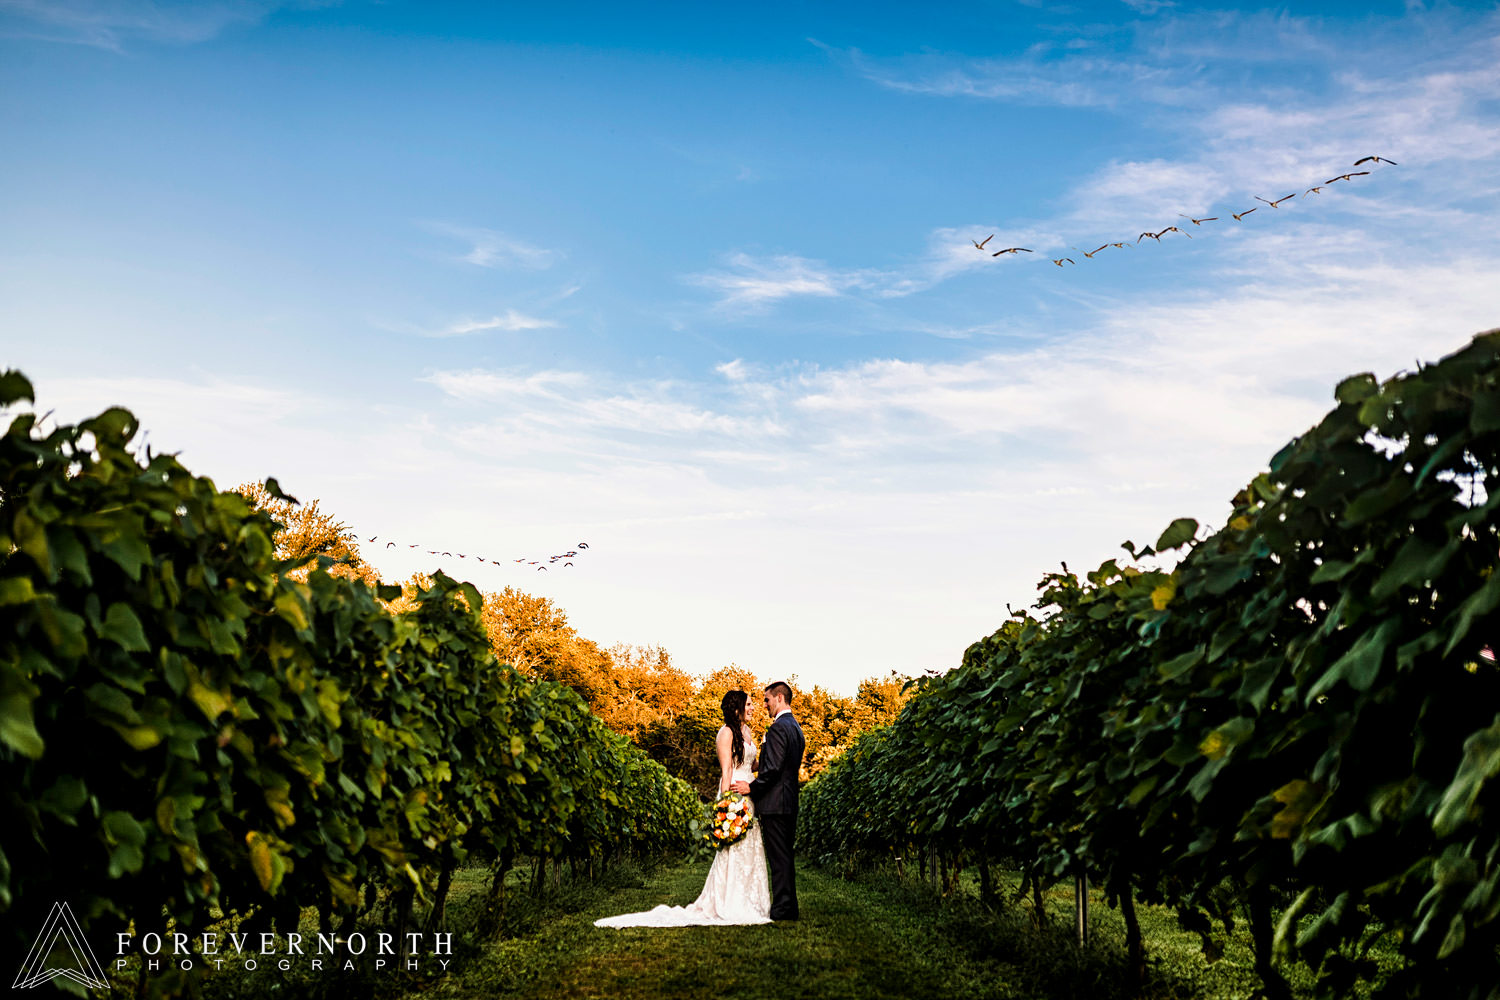 Mendyk-Valenzano-Family-Winery-NJ-Wedding-Photographer-27.JPG